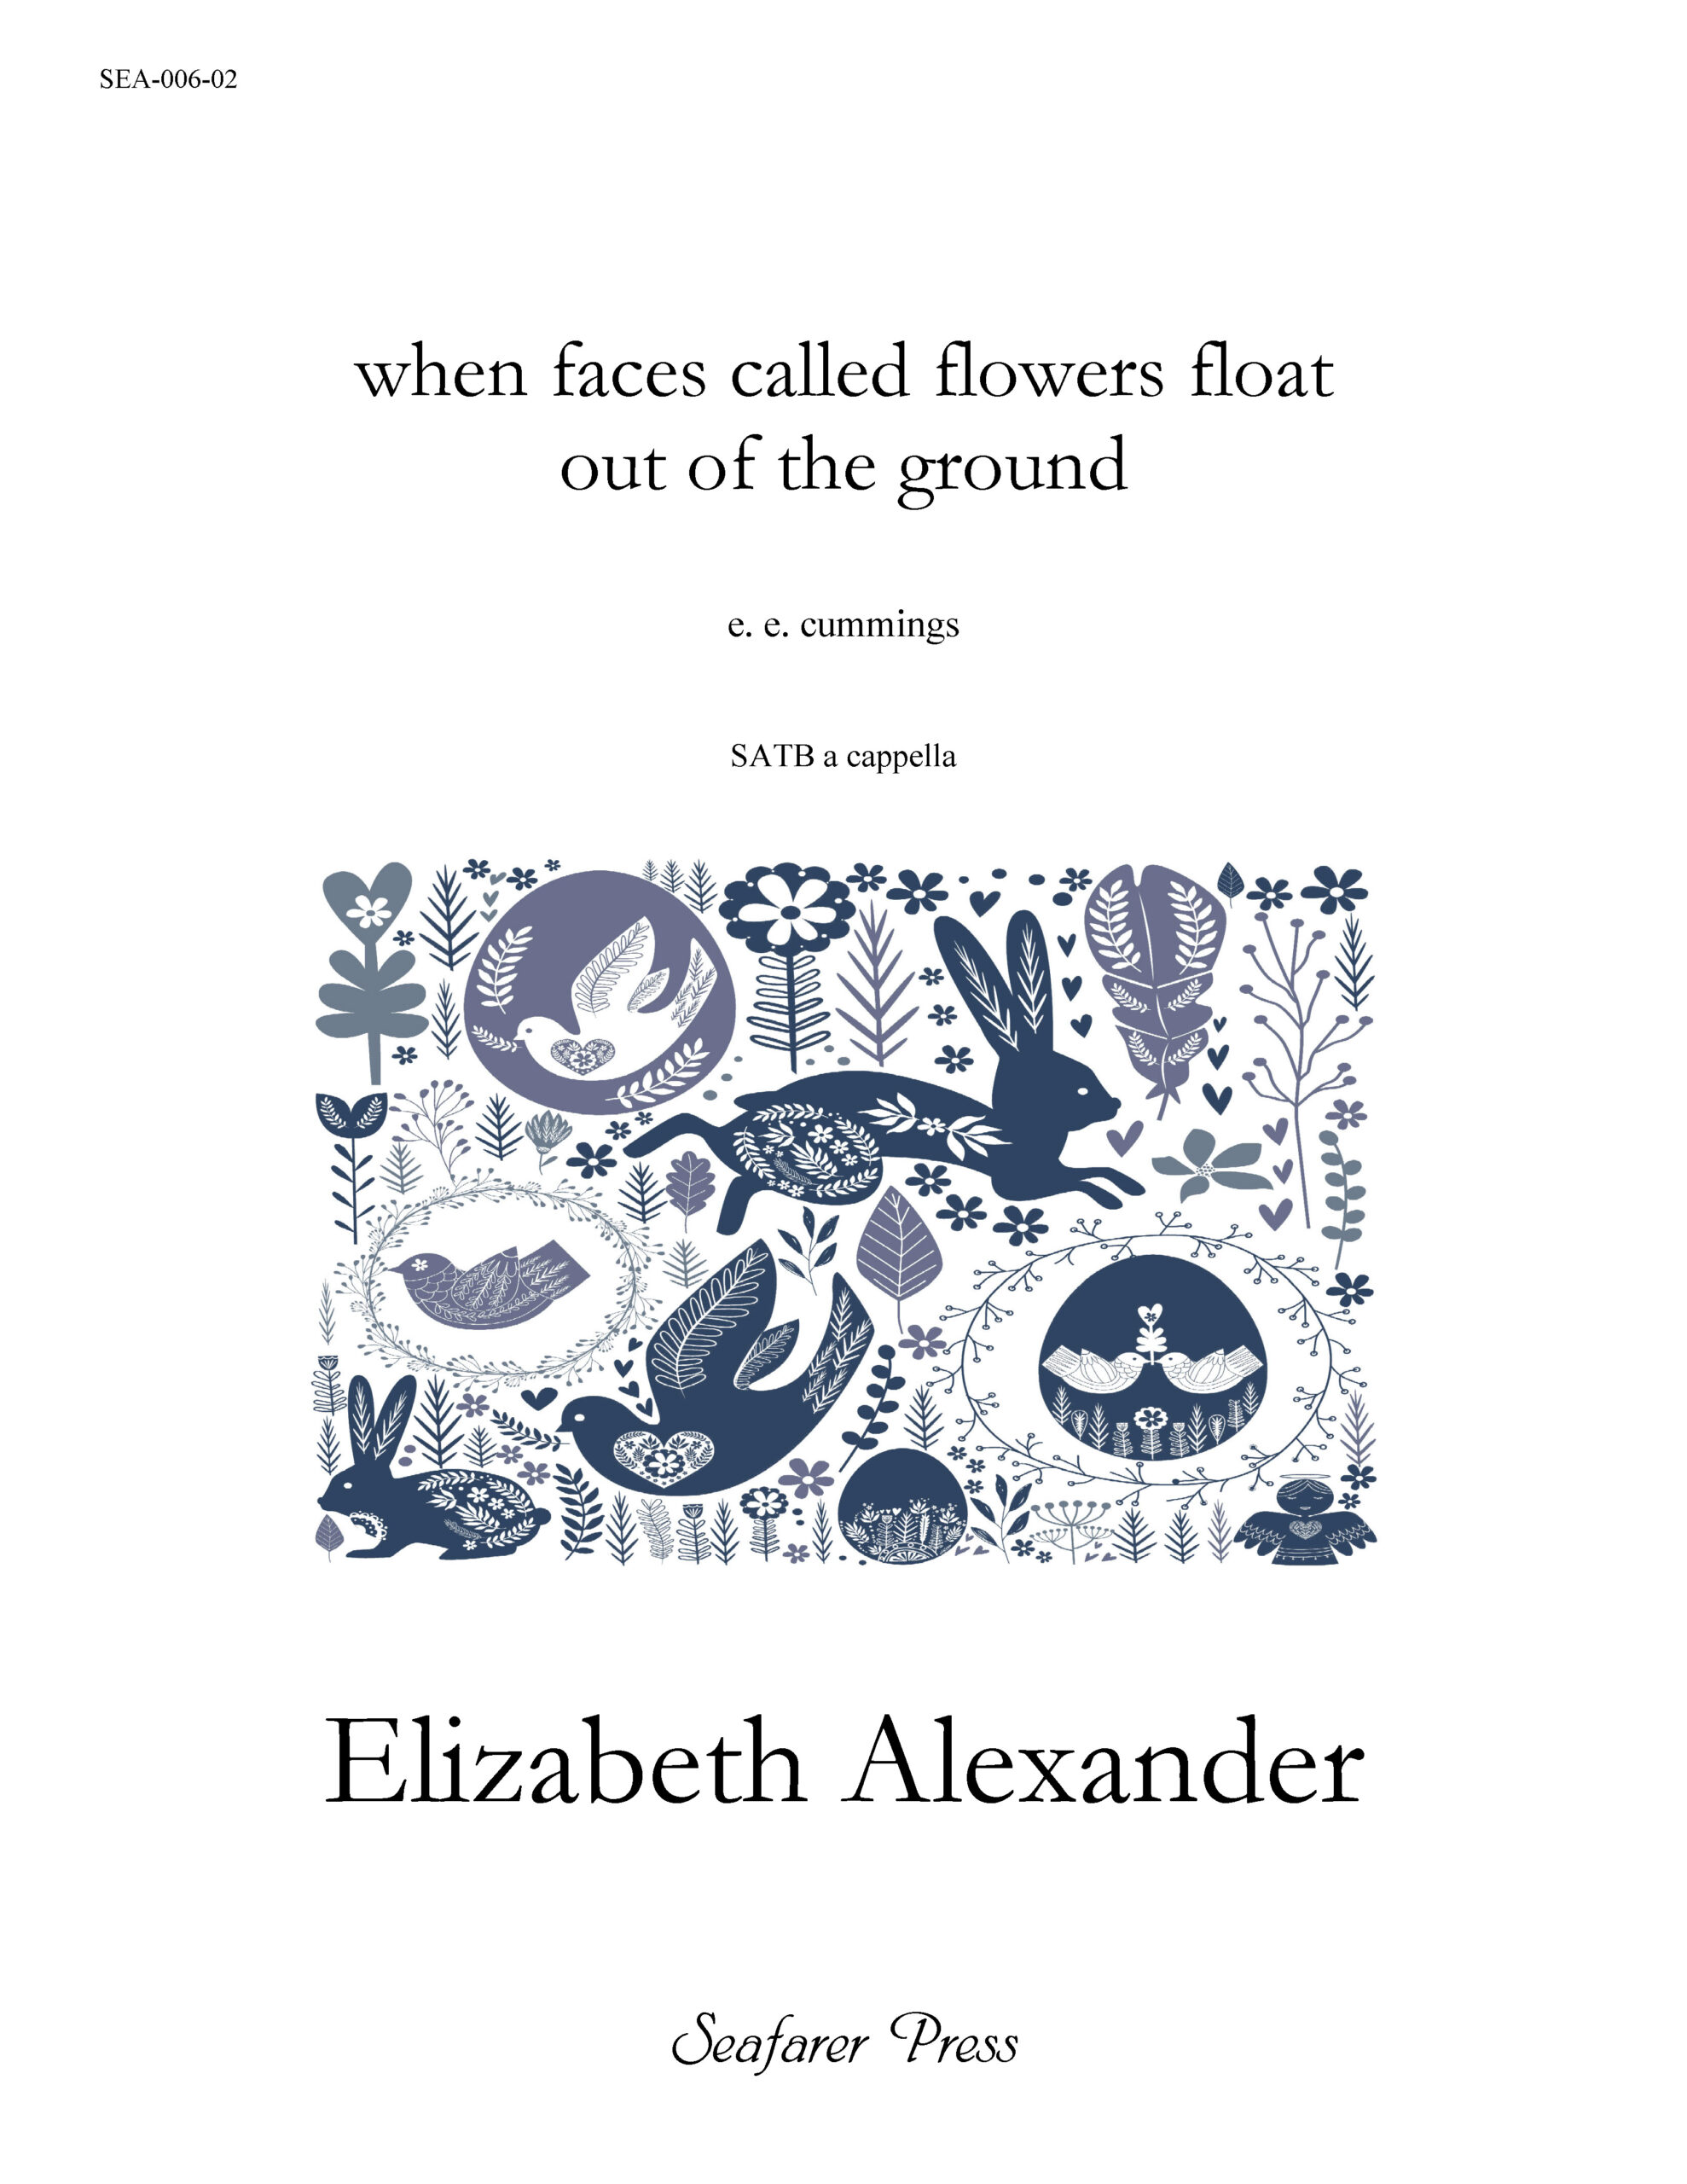 SEA-006-02 - when faces called flowers float out of the ground